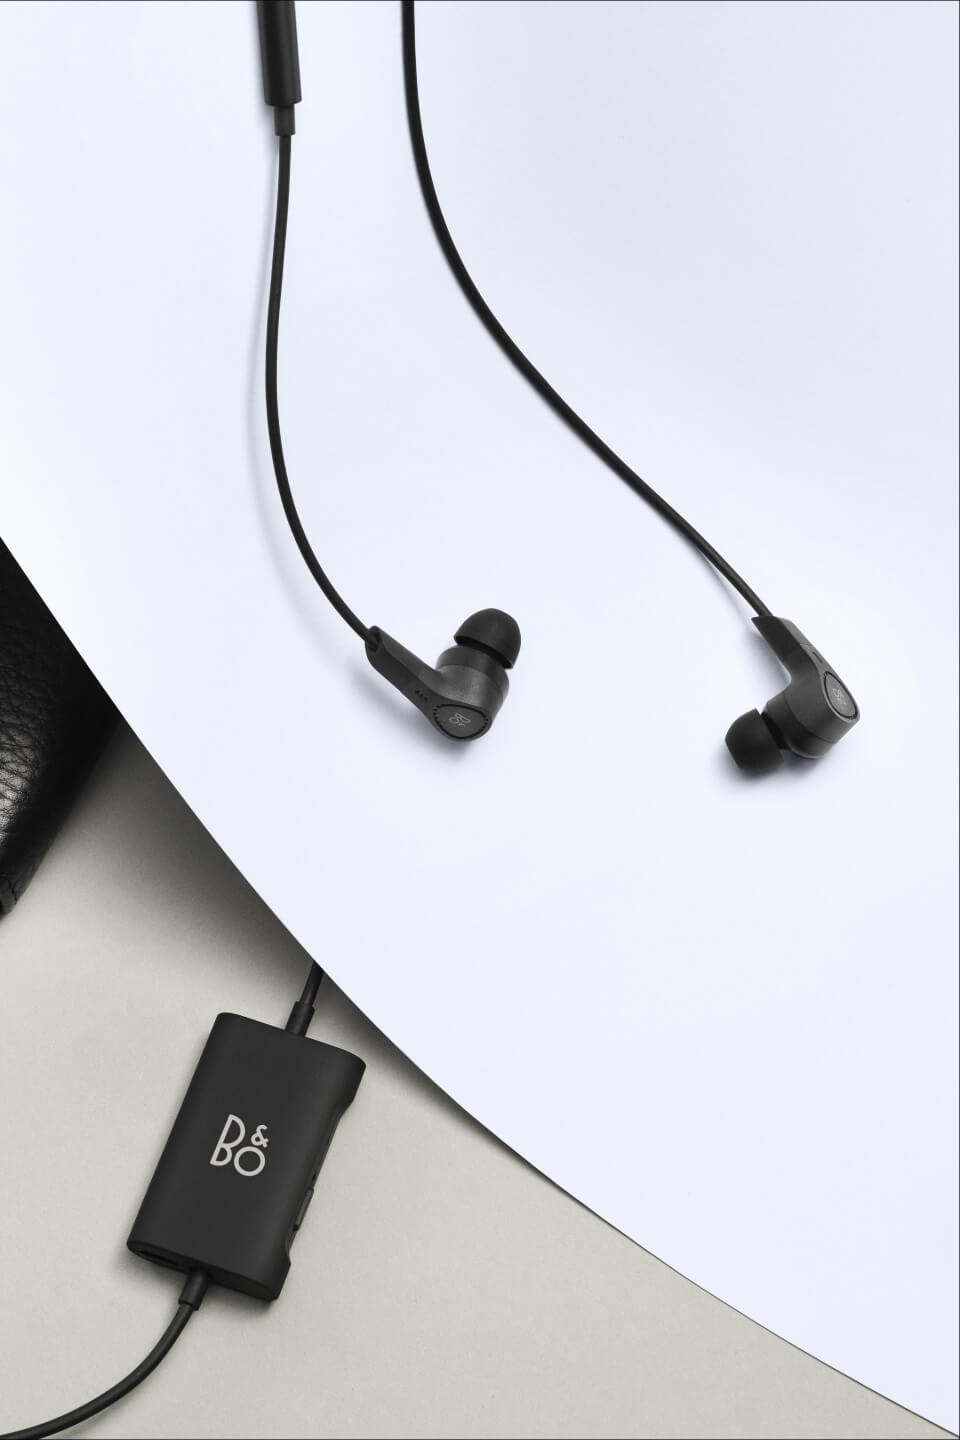 BeoPlay E4 - improved design of remote control